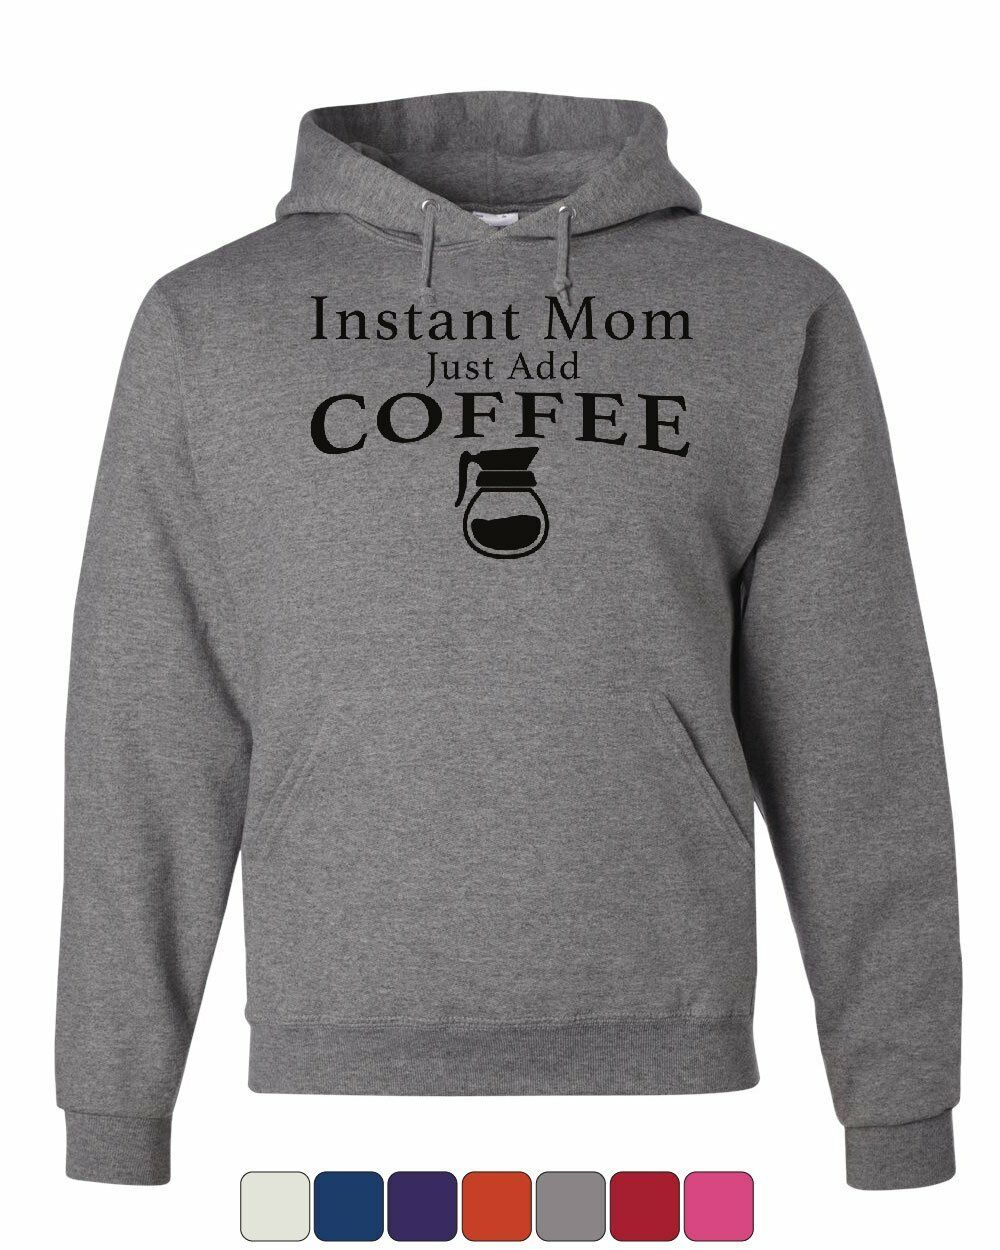 Instant Mom Hoodie Coffee Waking Up Parenting Funny Cute Mommy Sweatshirt